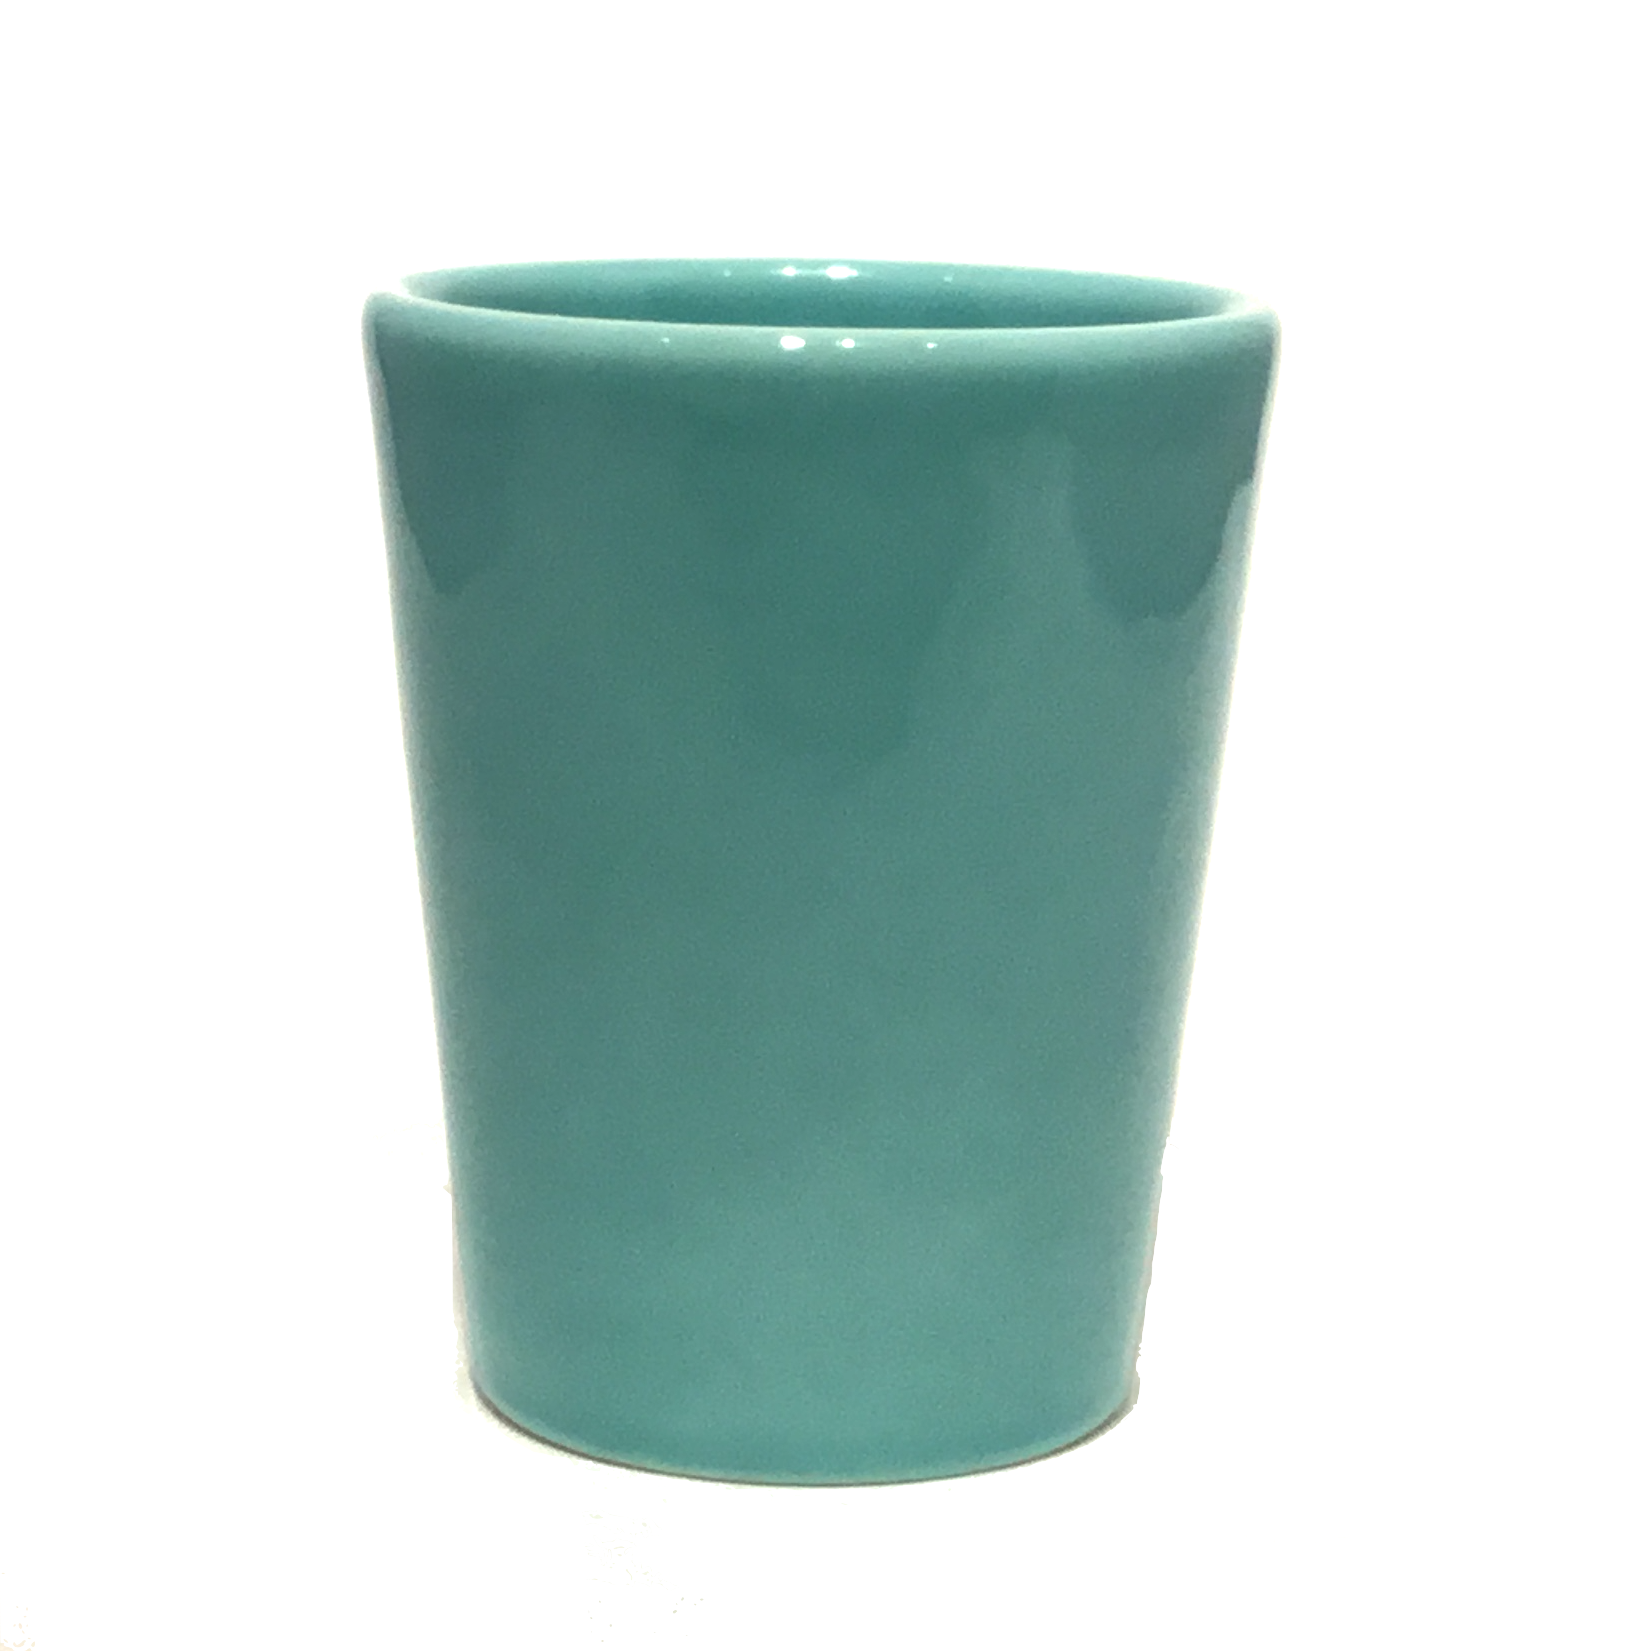 Beker coupe-2